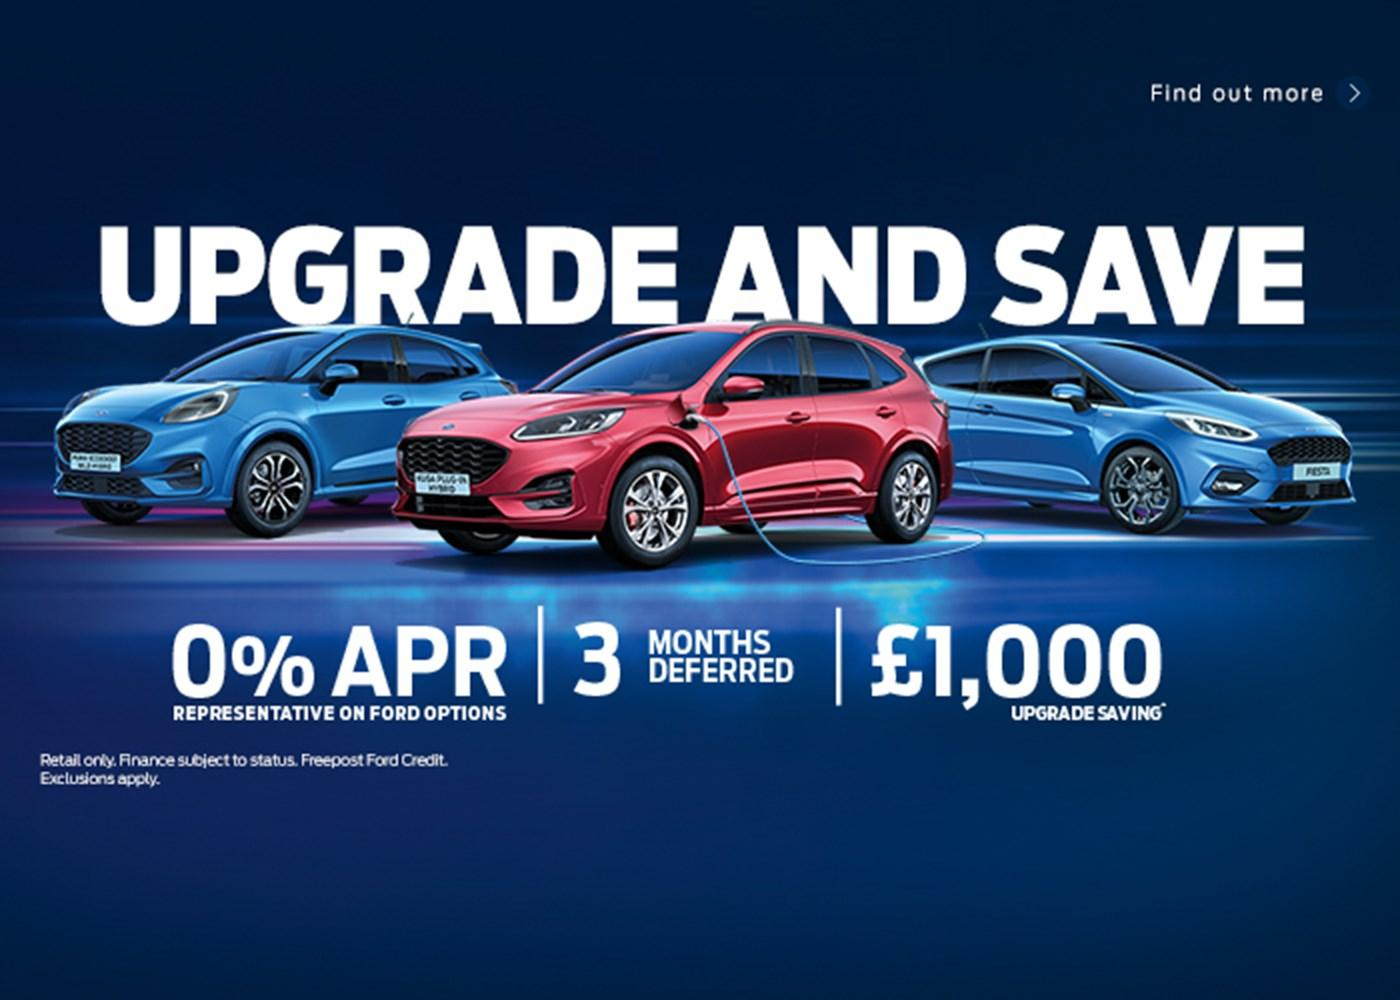 Ford Kuga, Ford Puma, Ford Fiesta with offer